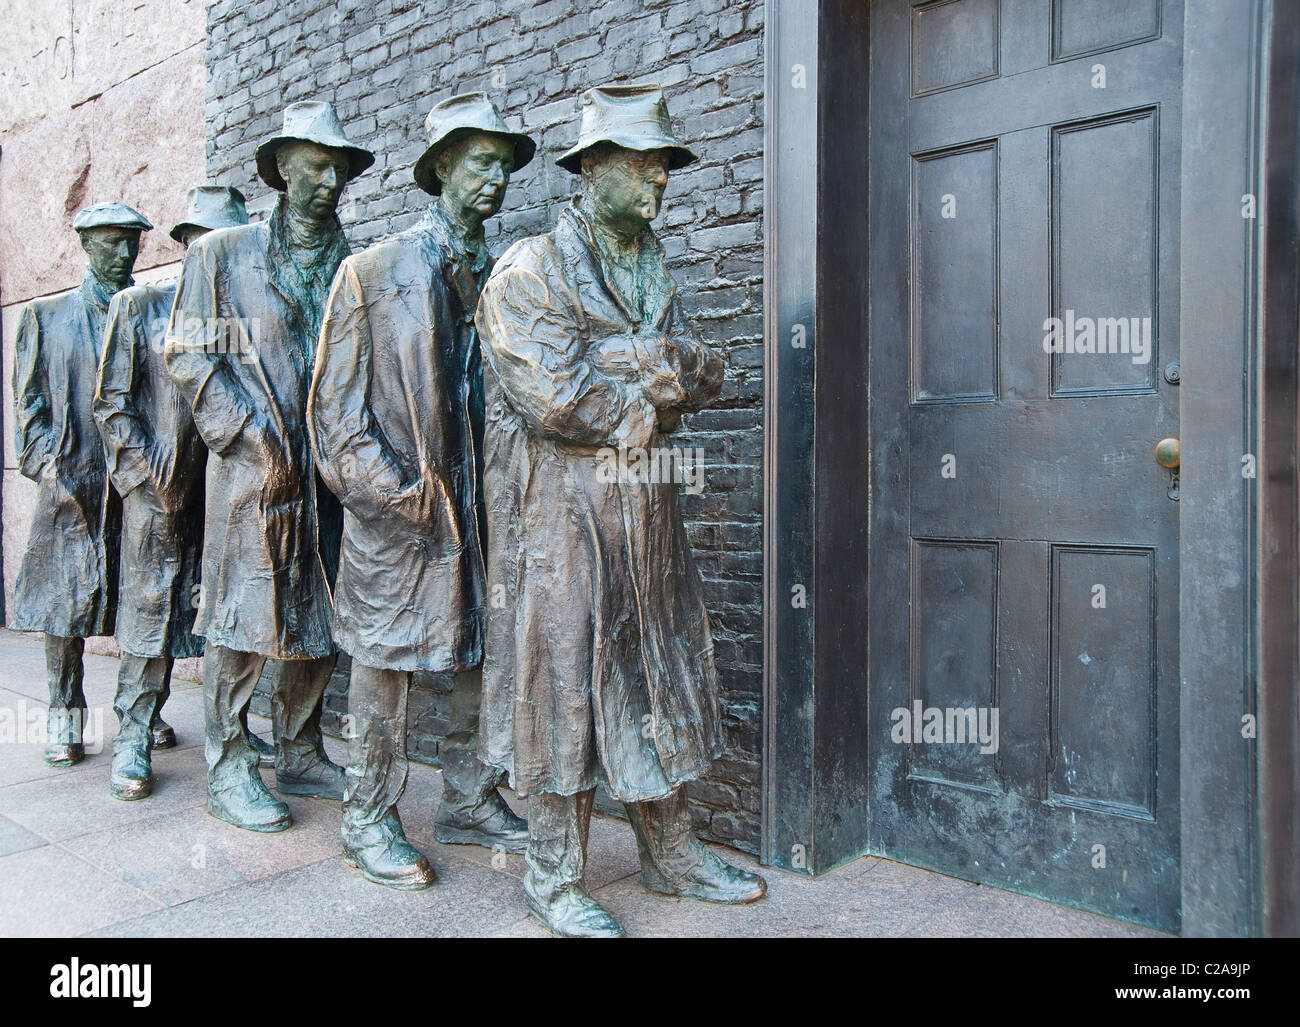 Bronze Statues Of Common Depression Era Men Standing In A Soup Kitchen  Line. This Statuary Is Located At The FDR Memorial In DC.